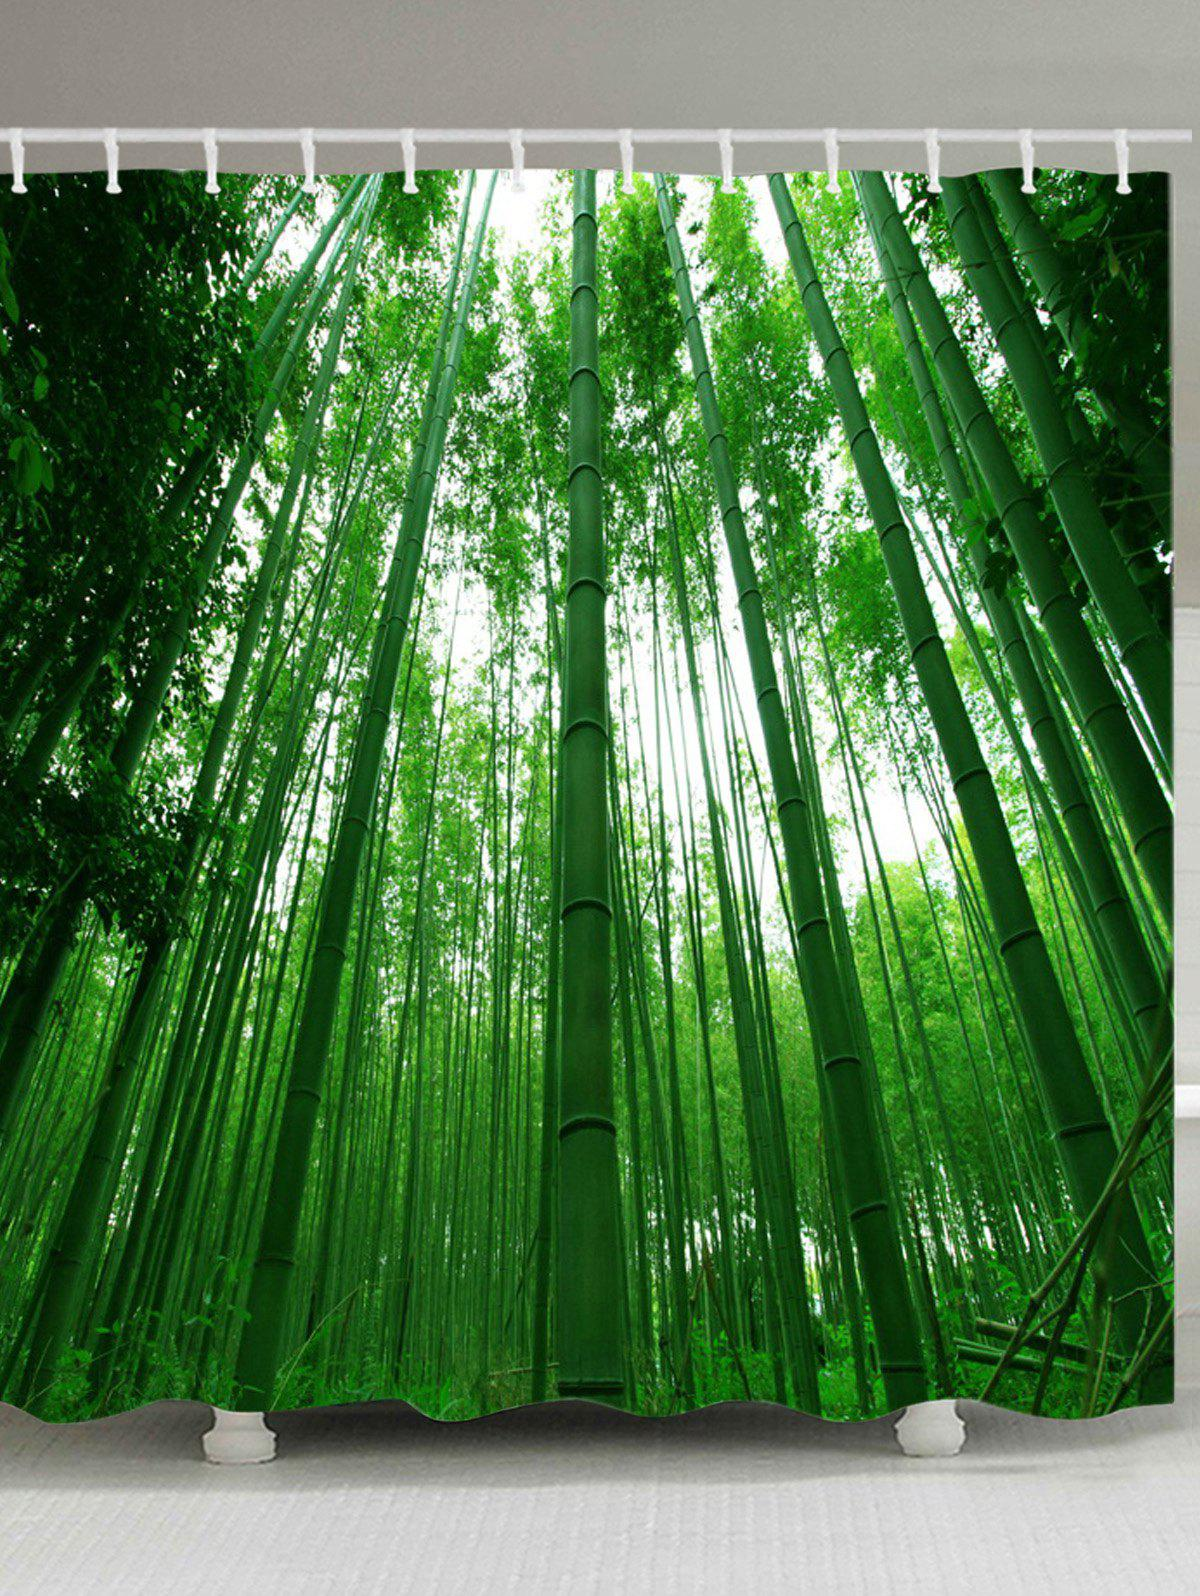 Outfit Bamboo Forest Pattern Waterproof Bathroom Shower Curtain